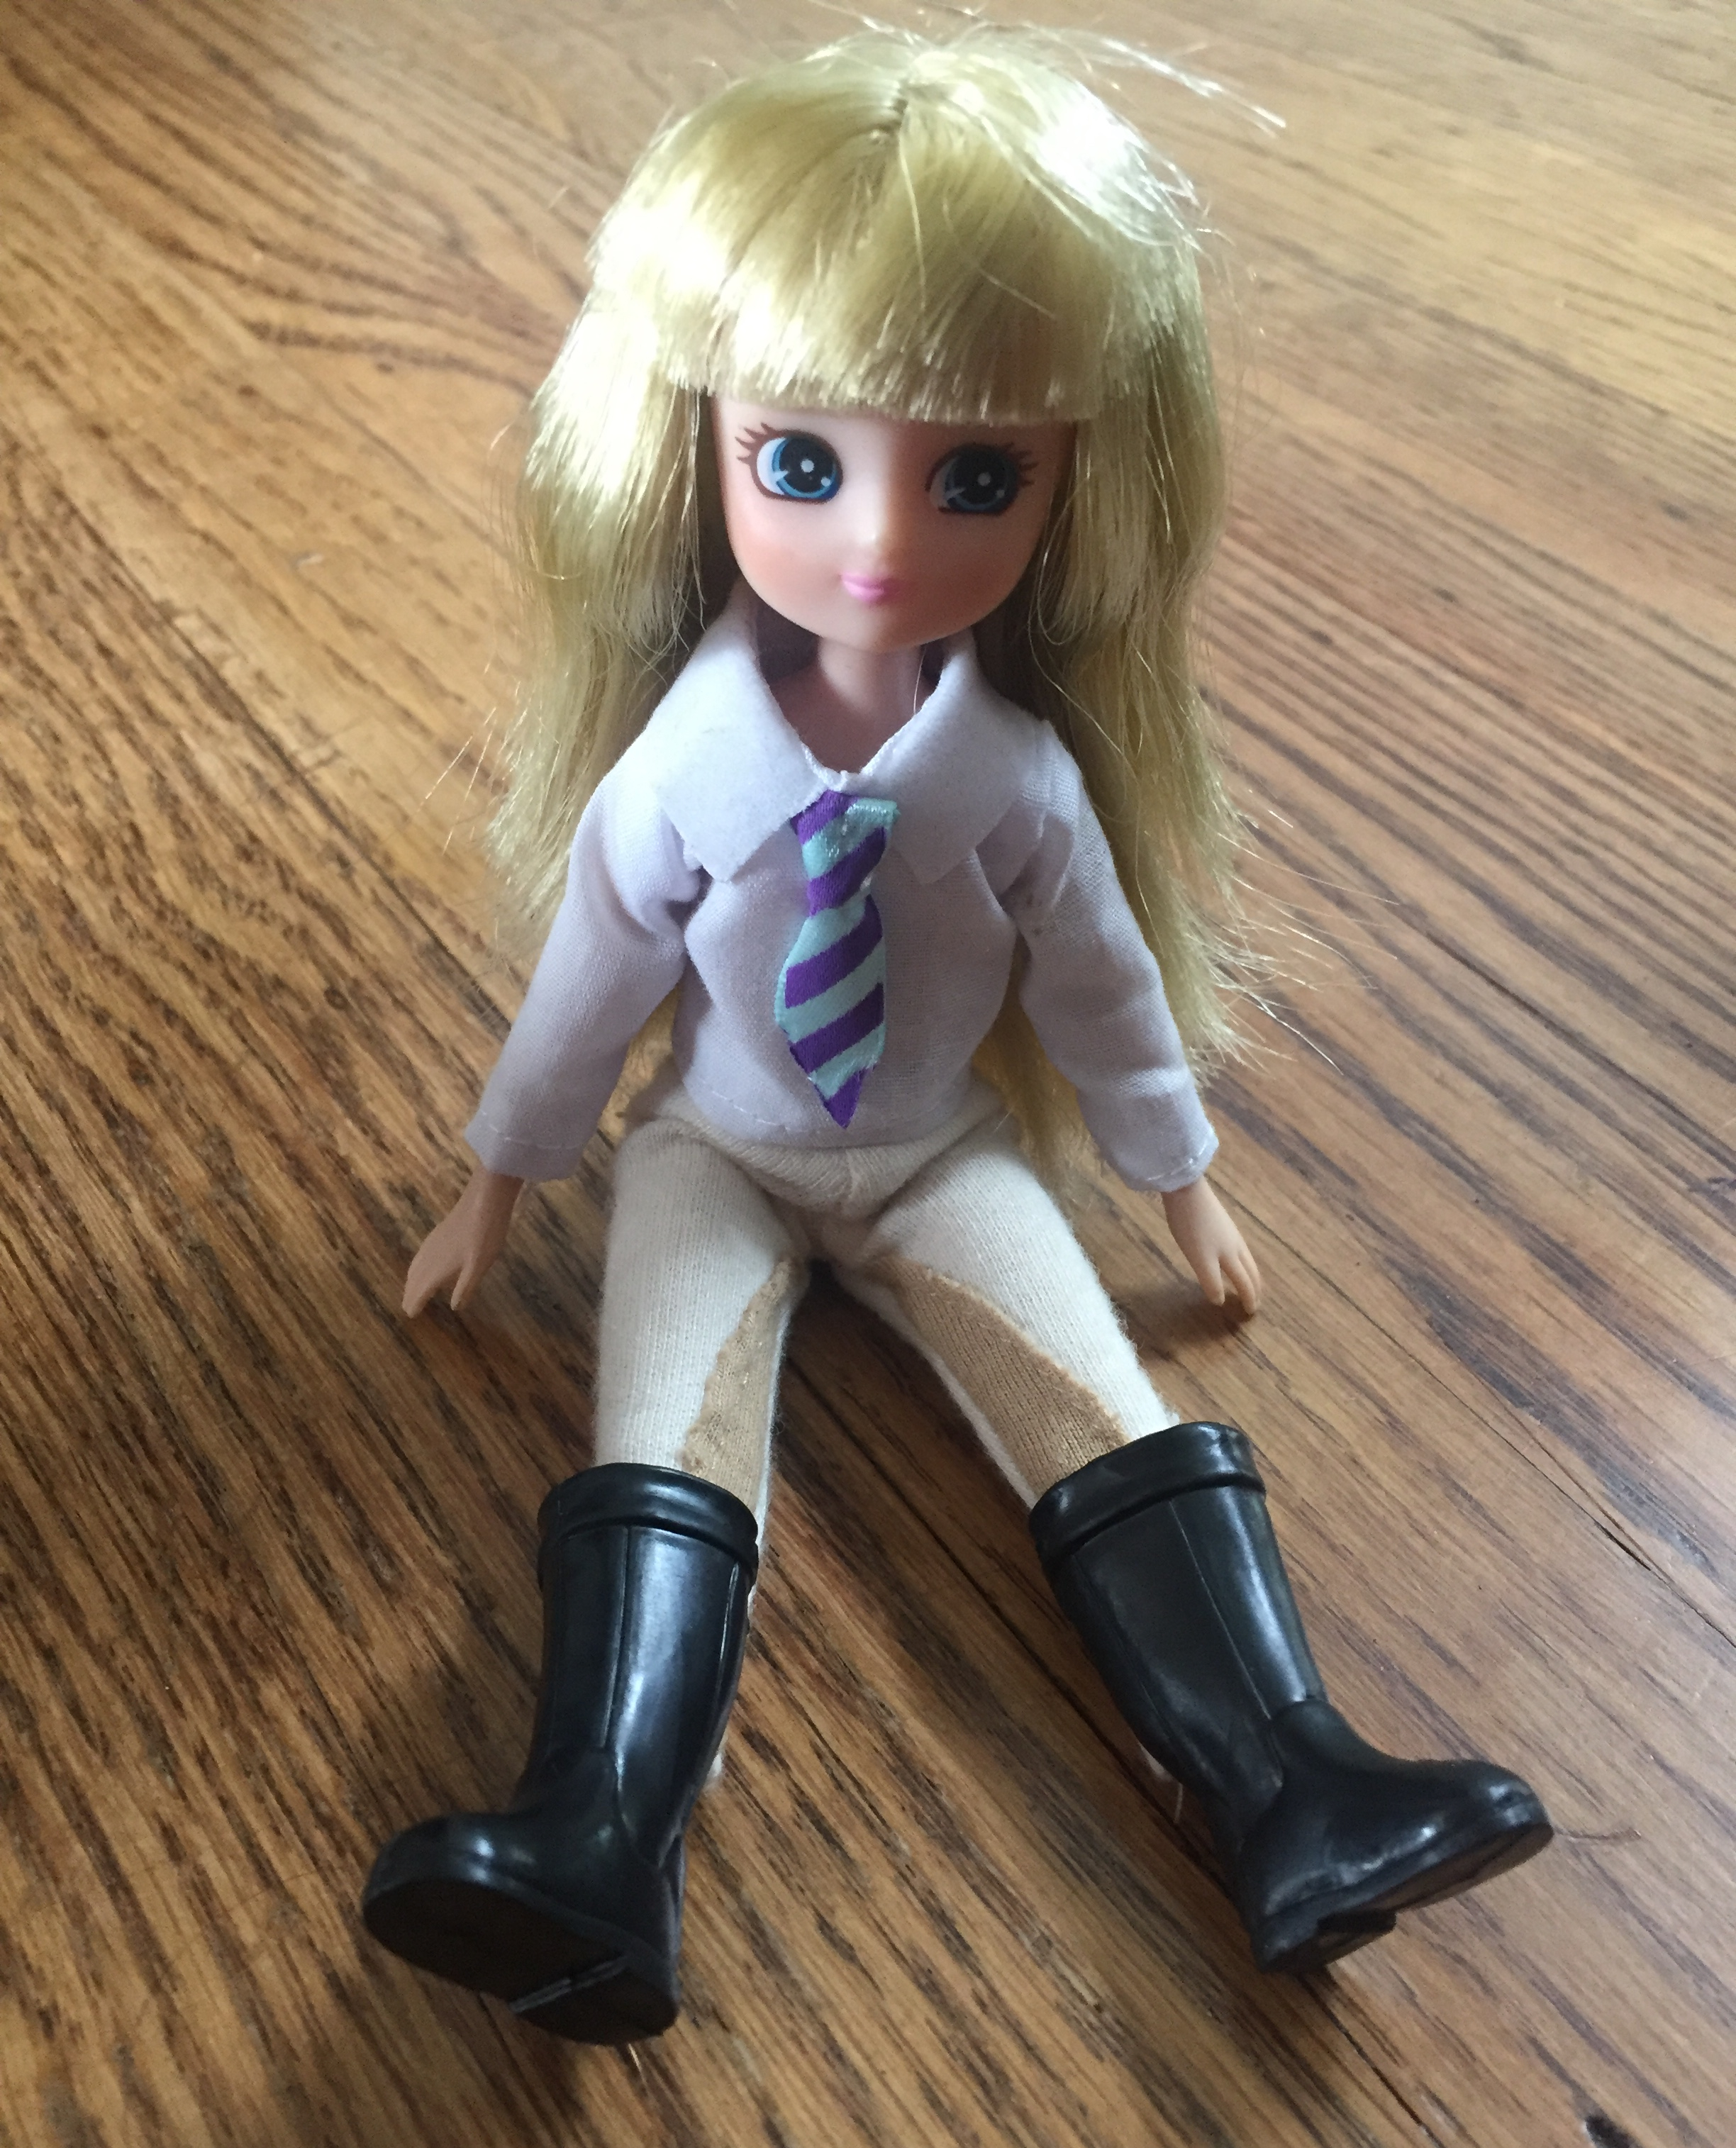 Lottie Dolls Pony Pals Olivia doll in riding clothes and boots sitting down